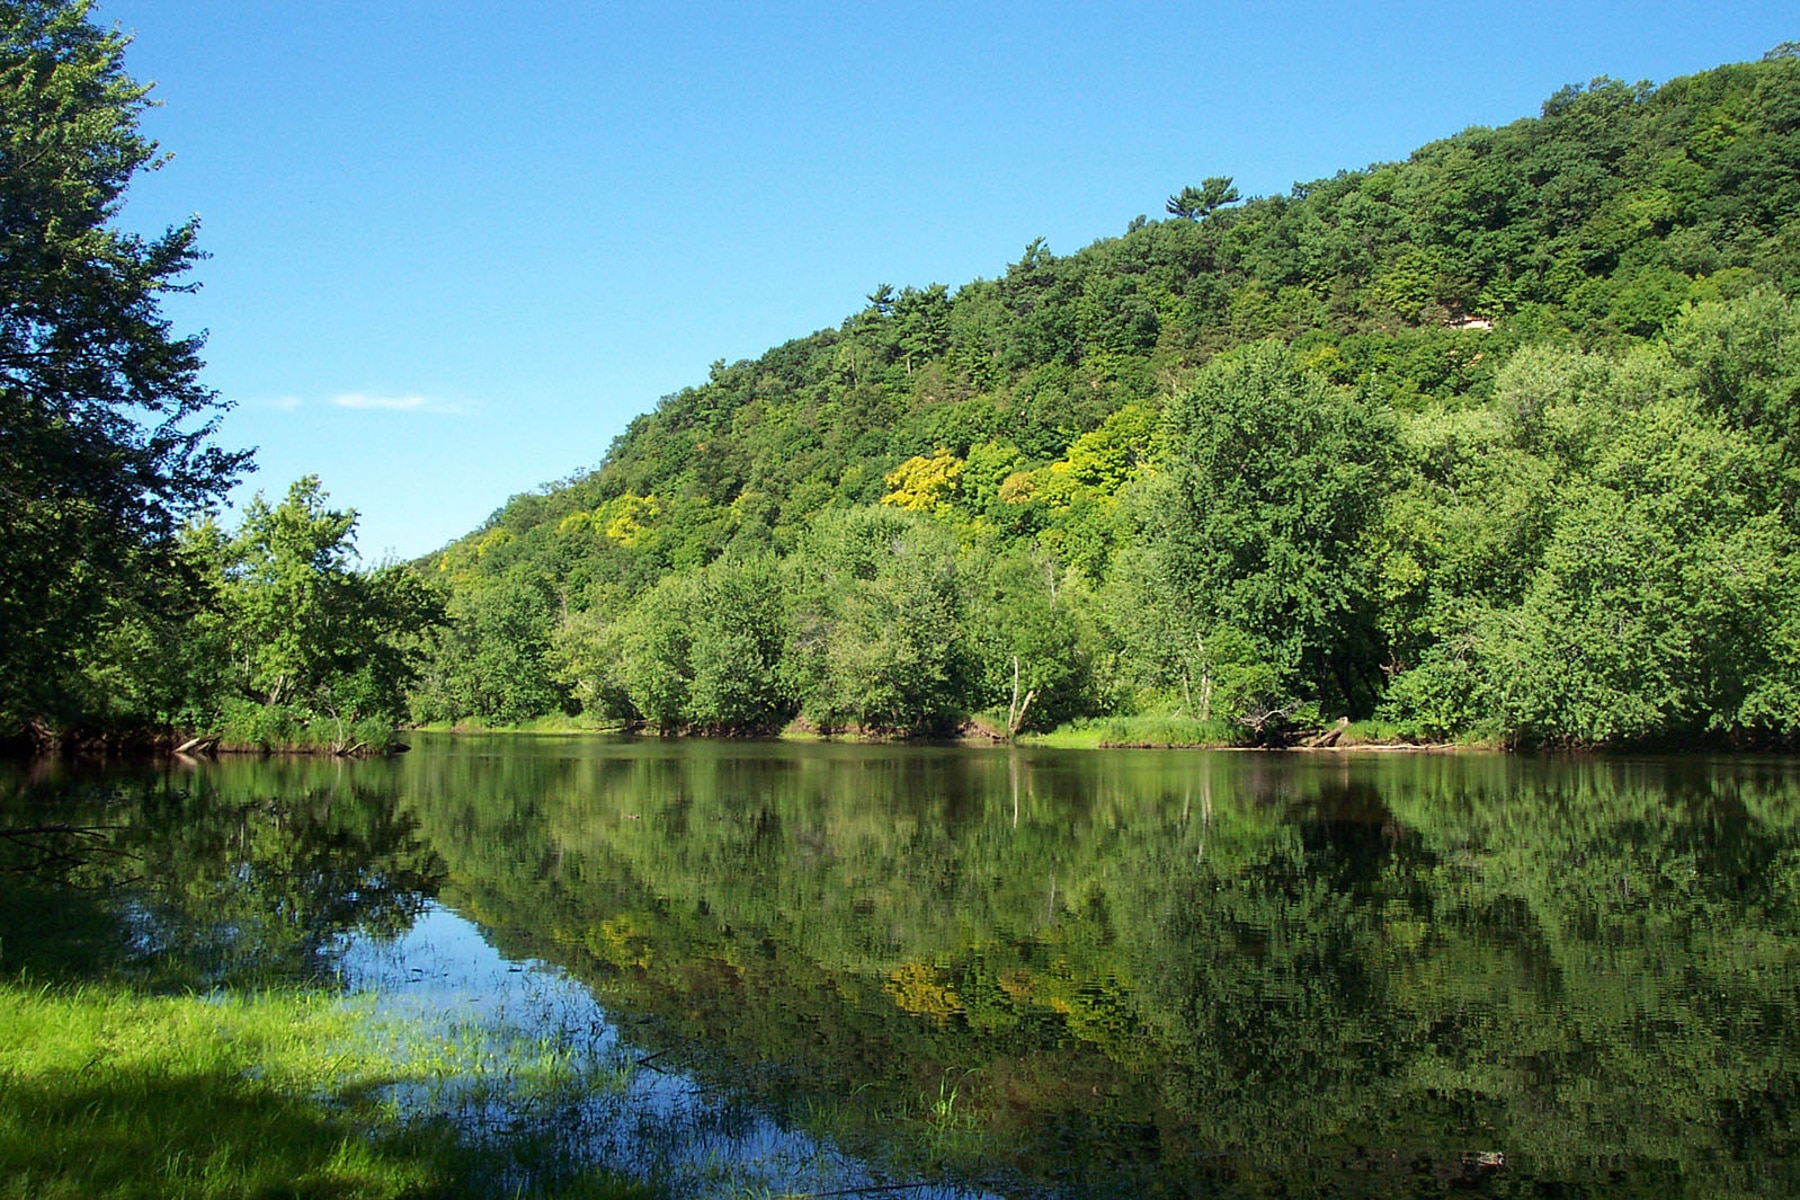 A river bordered by lush green trees (NPS)